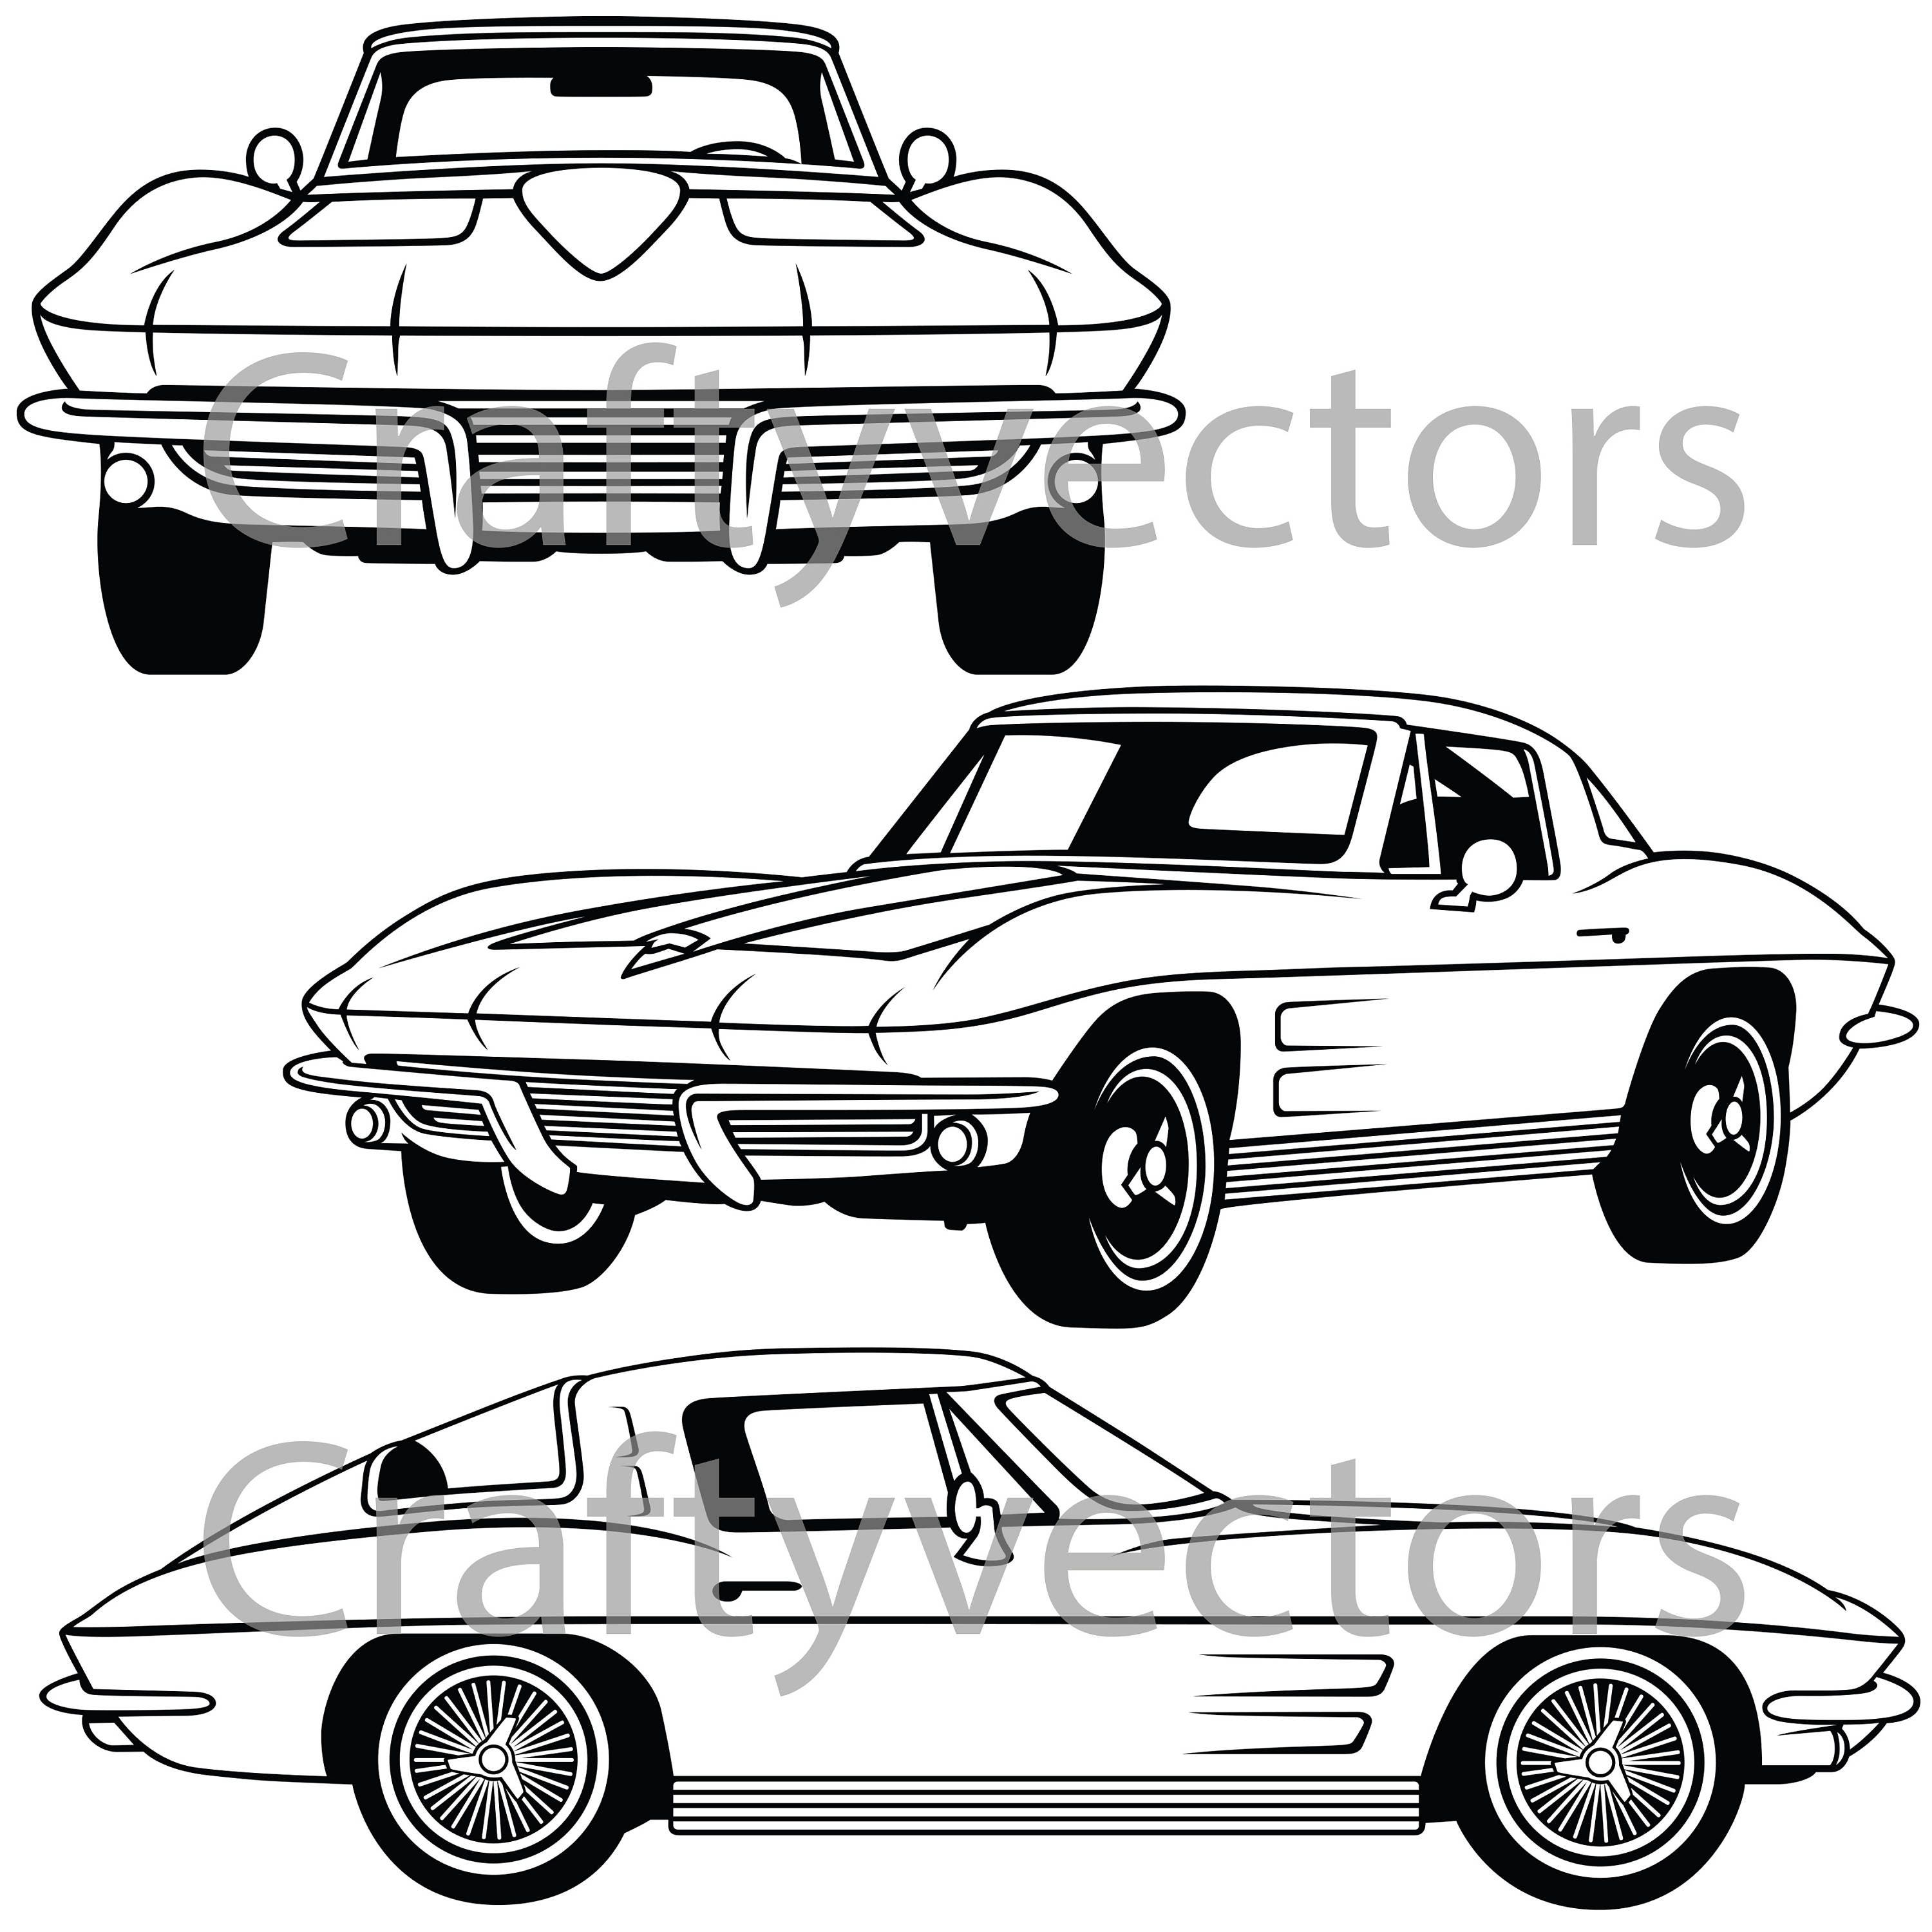 corvette stingray 1964 vector file etsy 1960 Corvette Convertible 50